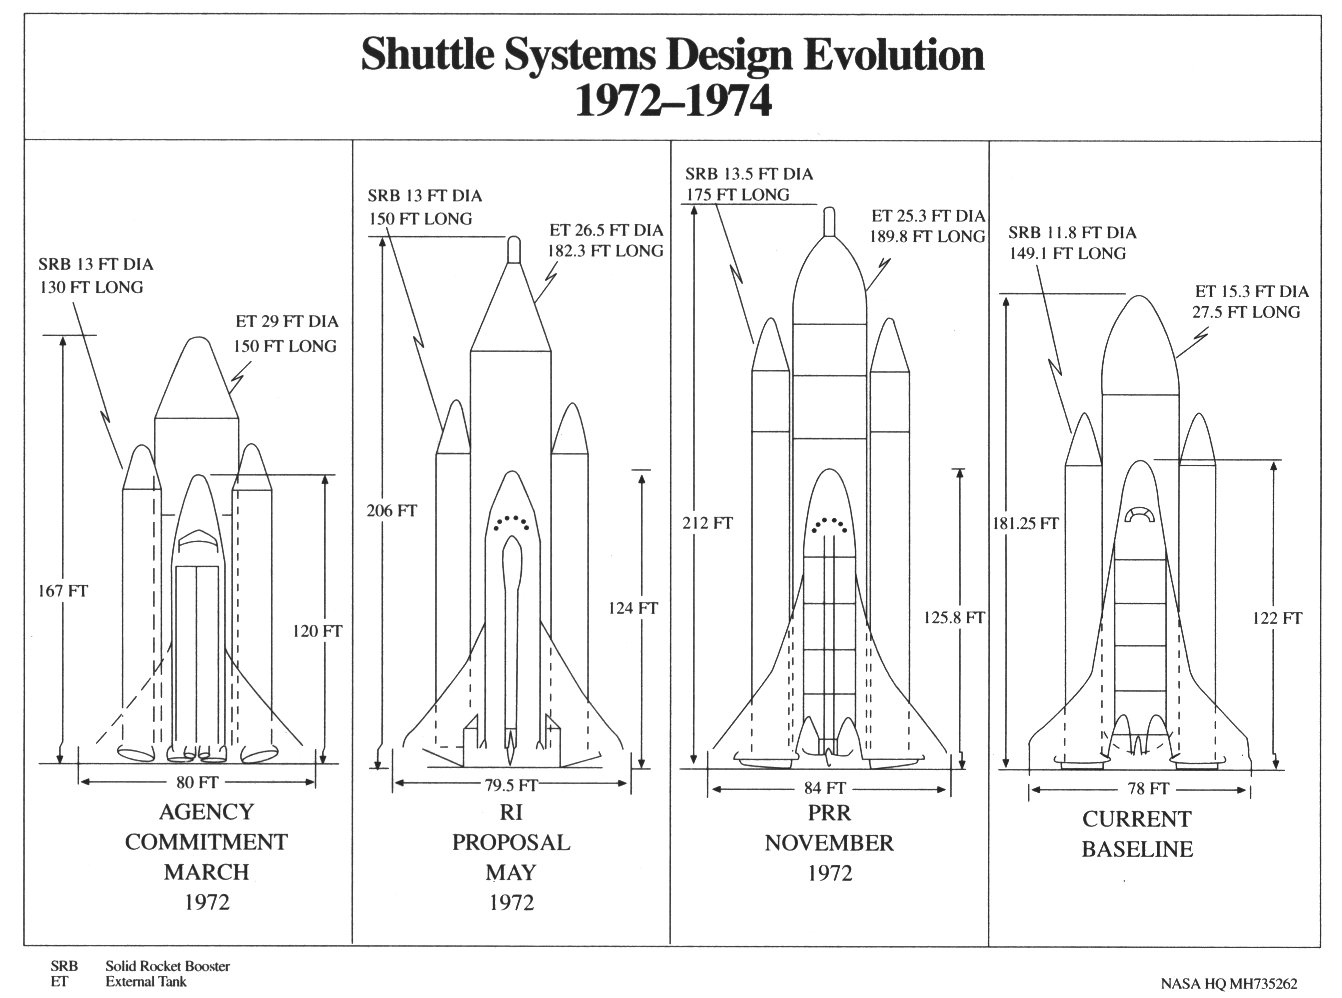 The Space Shuttles First Flight Sts 1 A Diagram Of An Evolution Engines Four Drawings Show Shuttle Design Changing From 1972 1974 Steering Enlarge